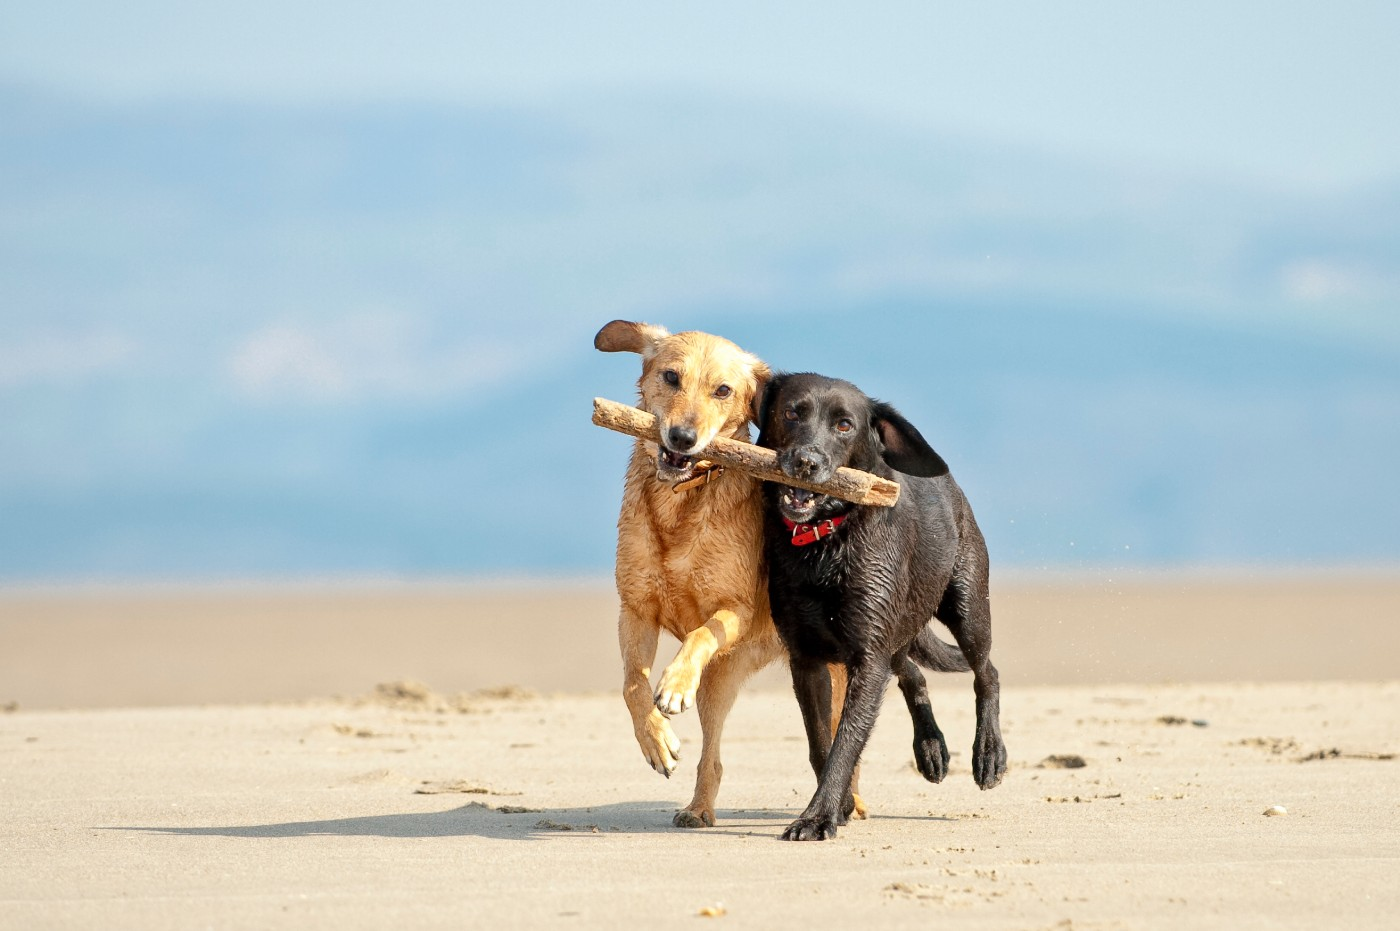 https://tickertapecdn.tdameritrade.com/assets/images/pages/md/Pair of dogs: How pairs trading and market relationships work